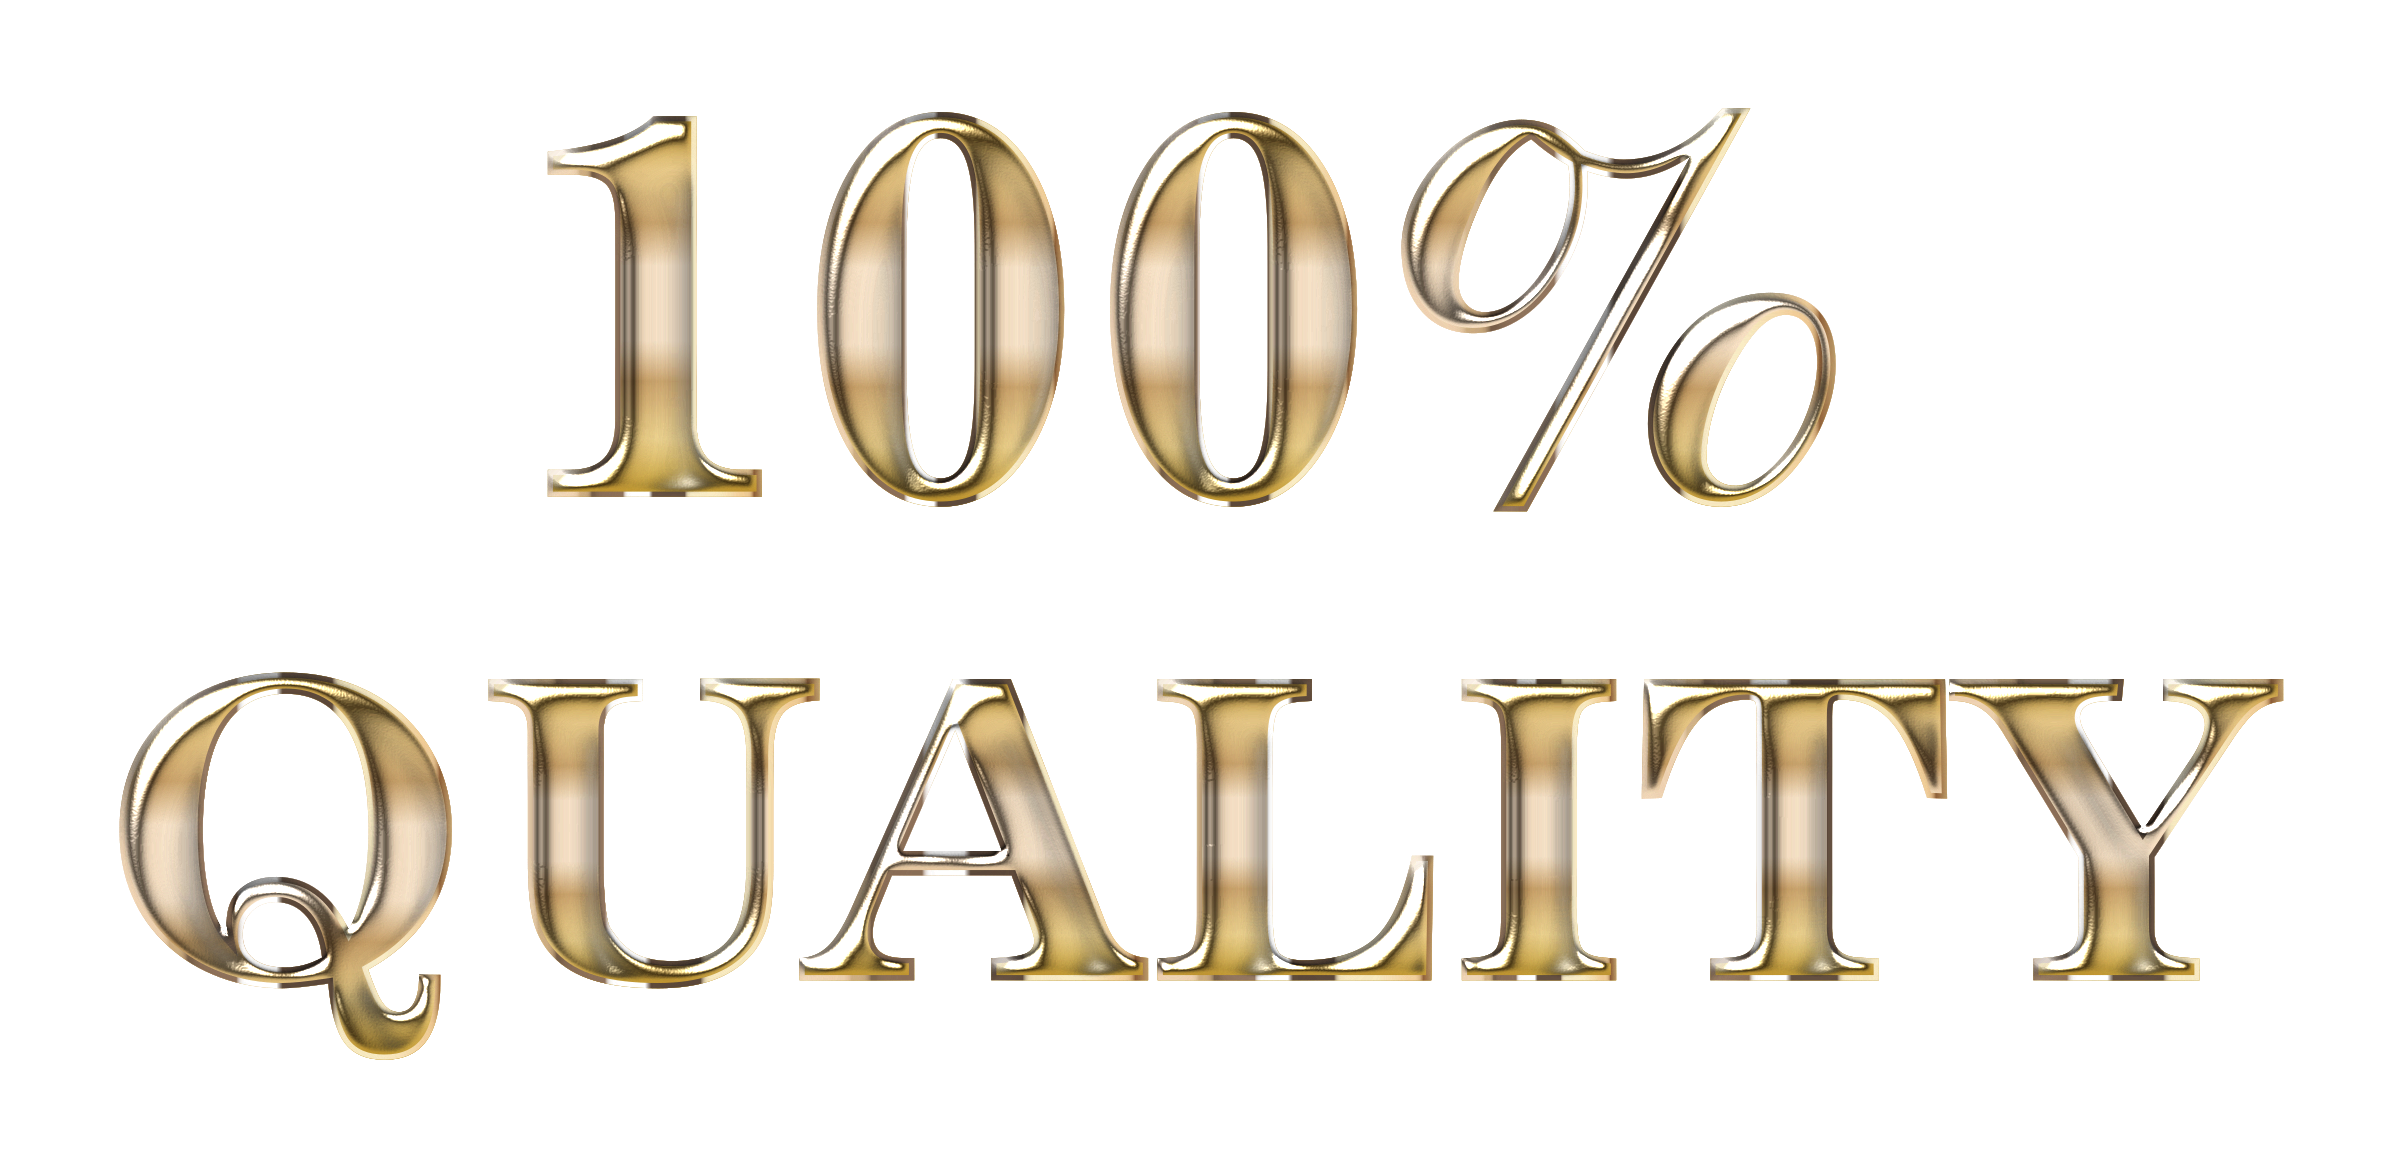 100 Percent Quality Typography Enhanced No Background by GDJ